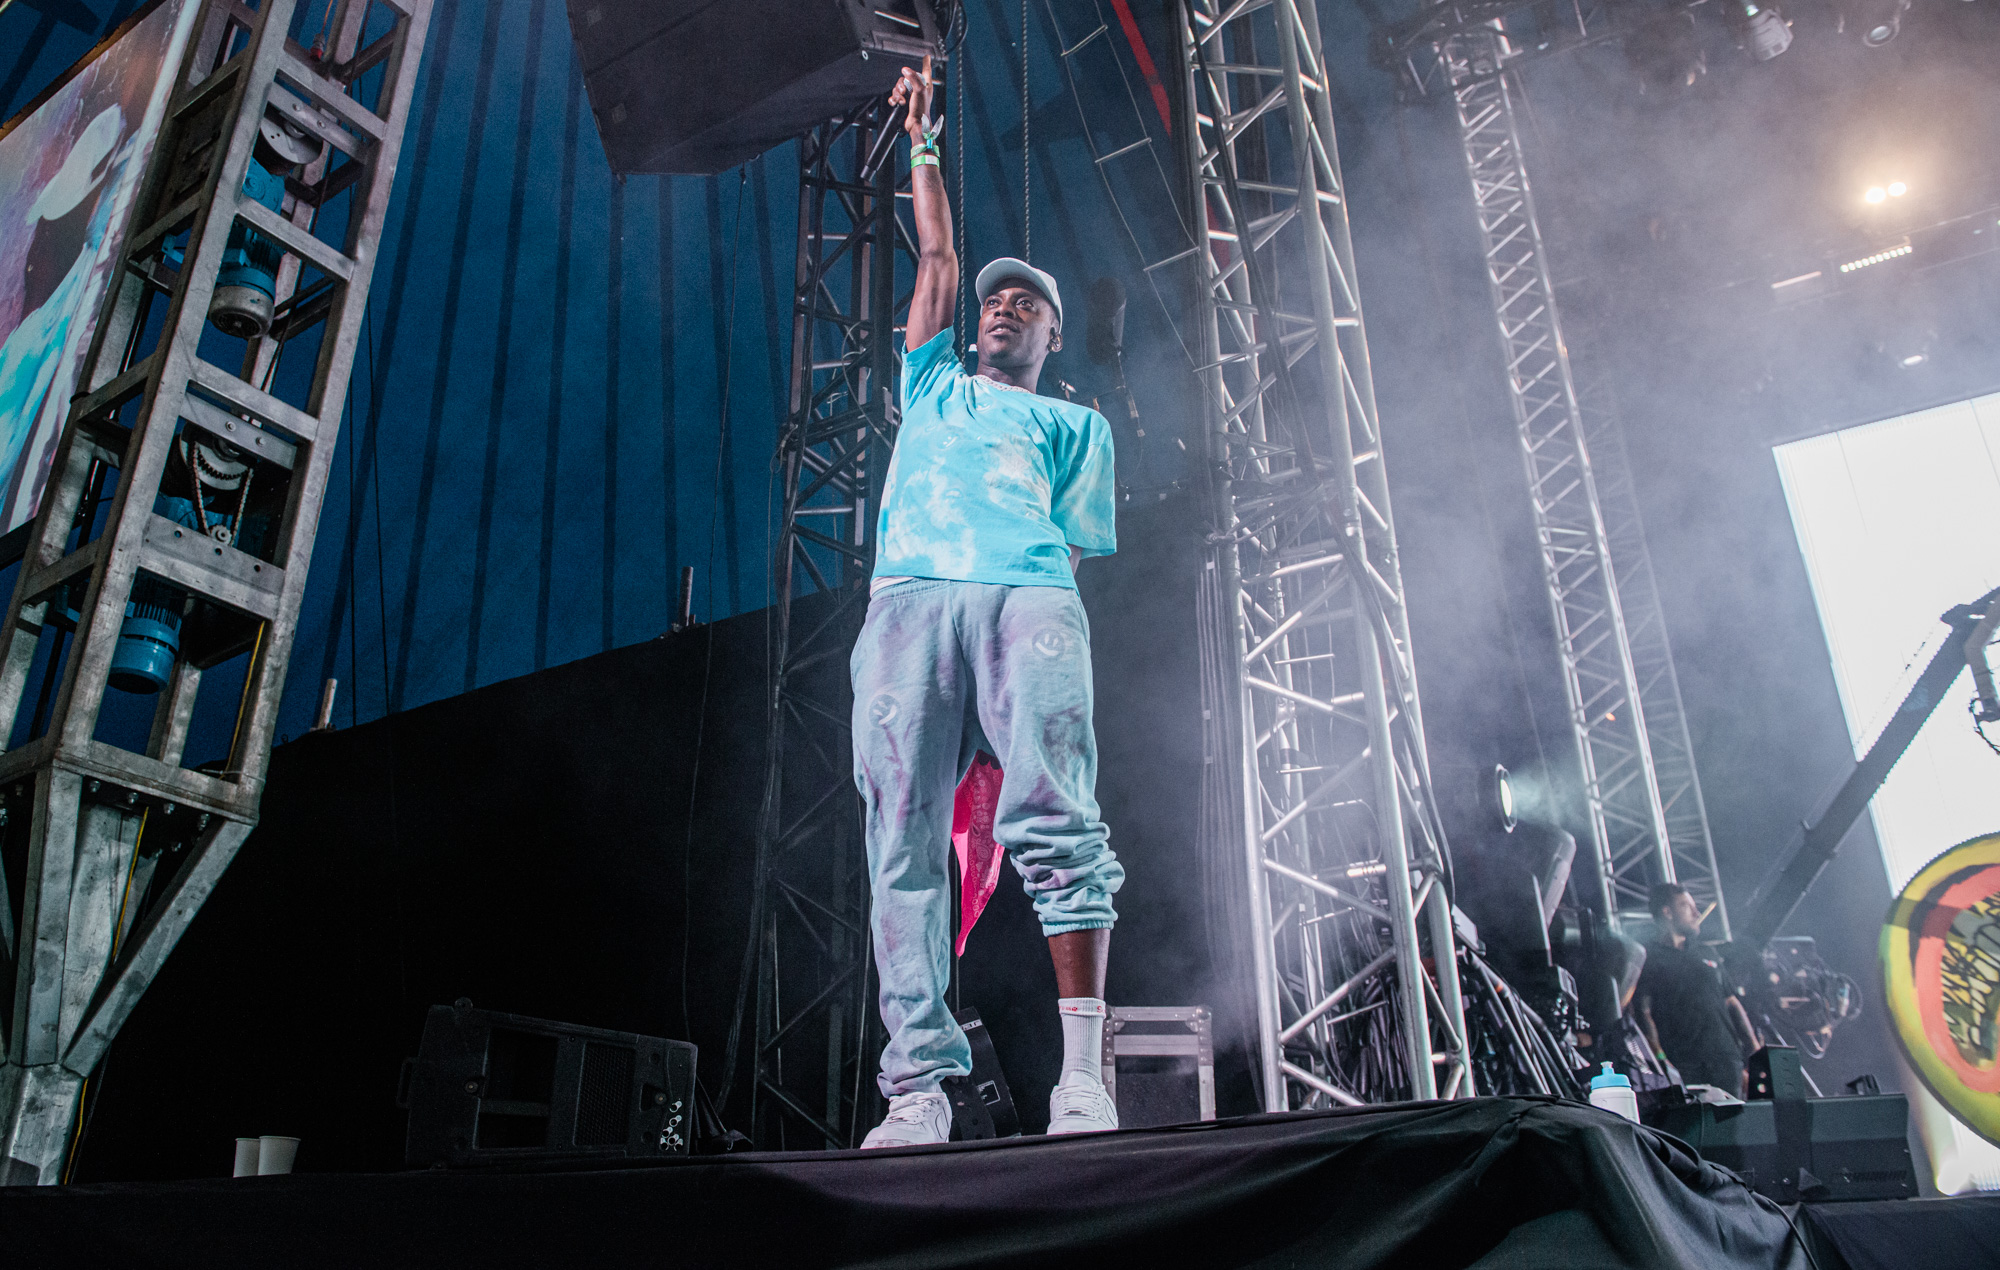 Octavian's debut Glastonbury performance packs energy and